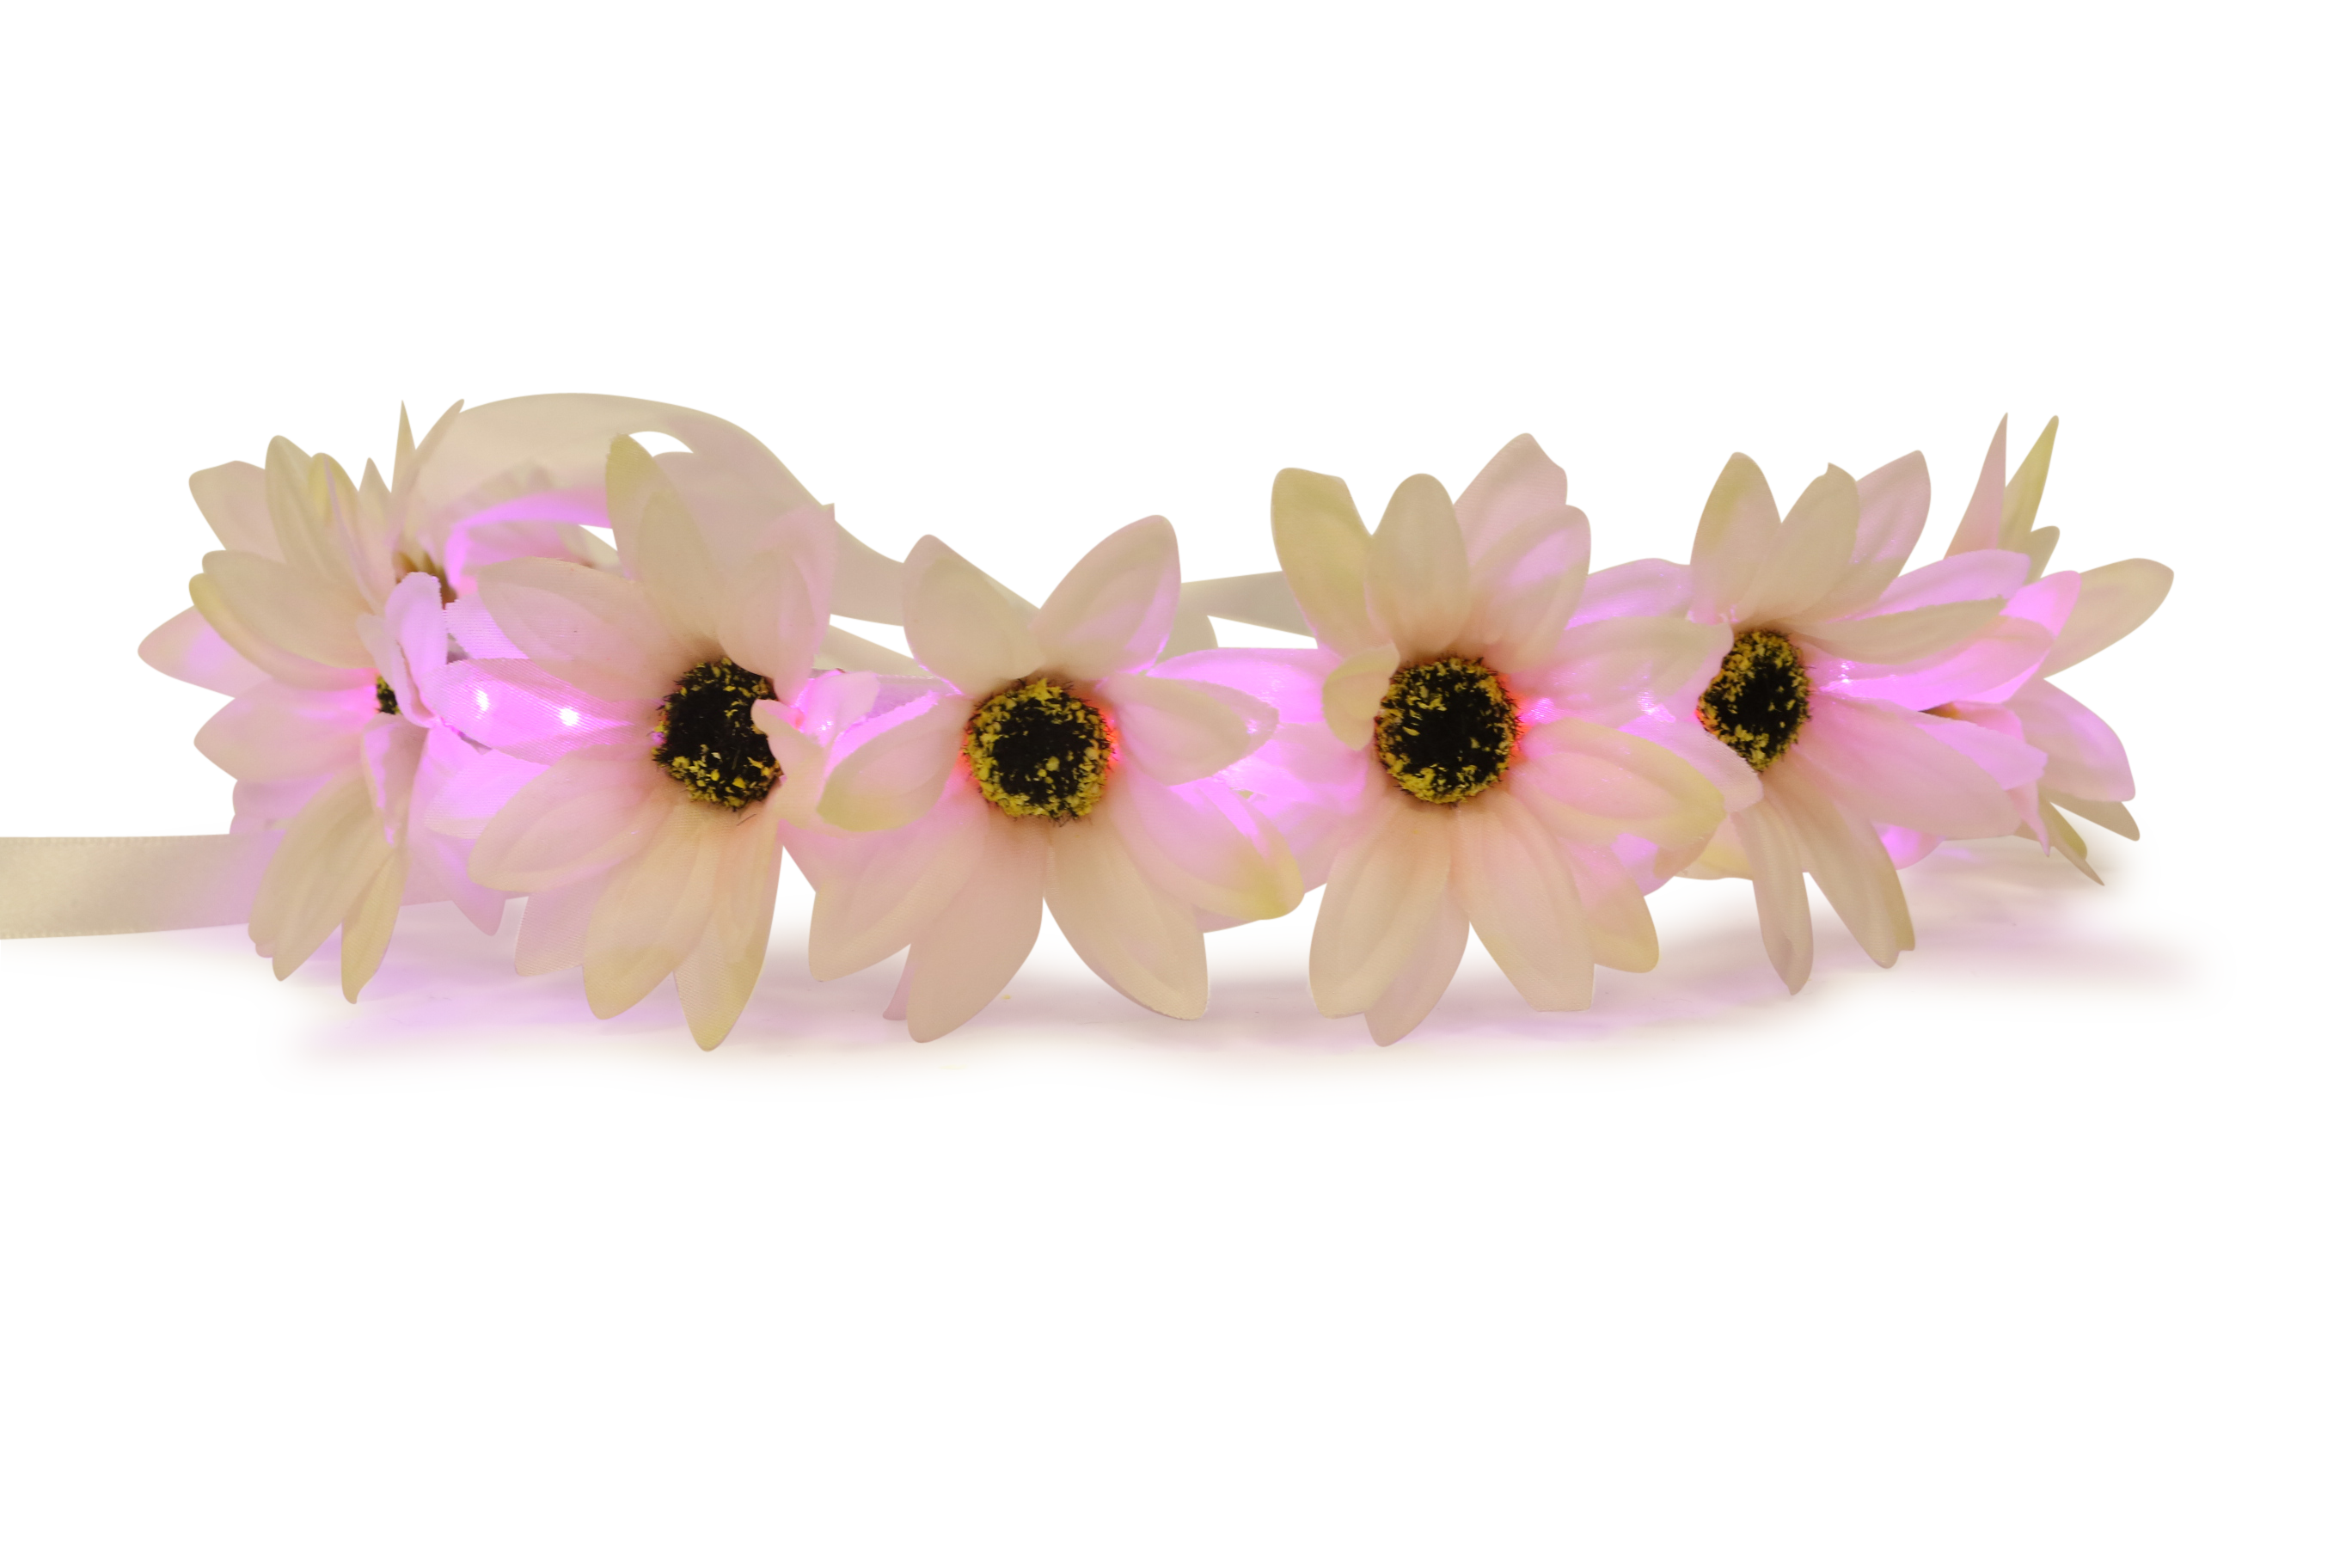 Transparent tumblr image collections. Png flower crown